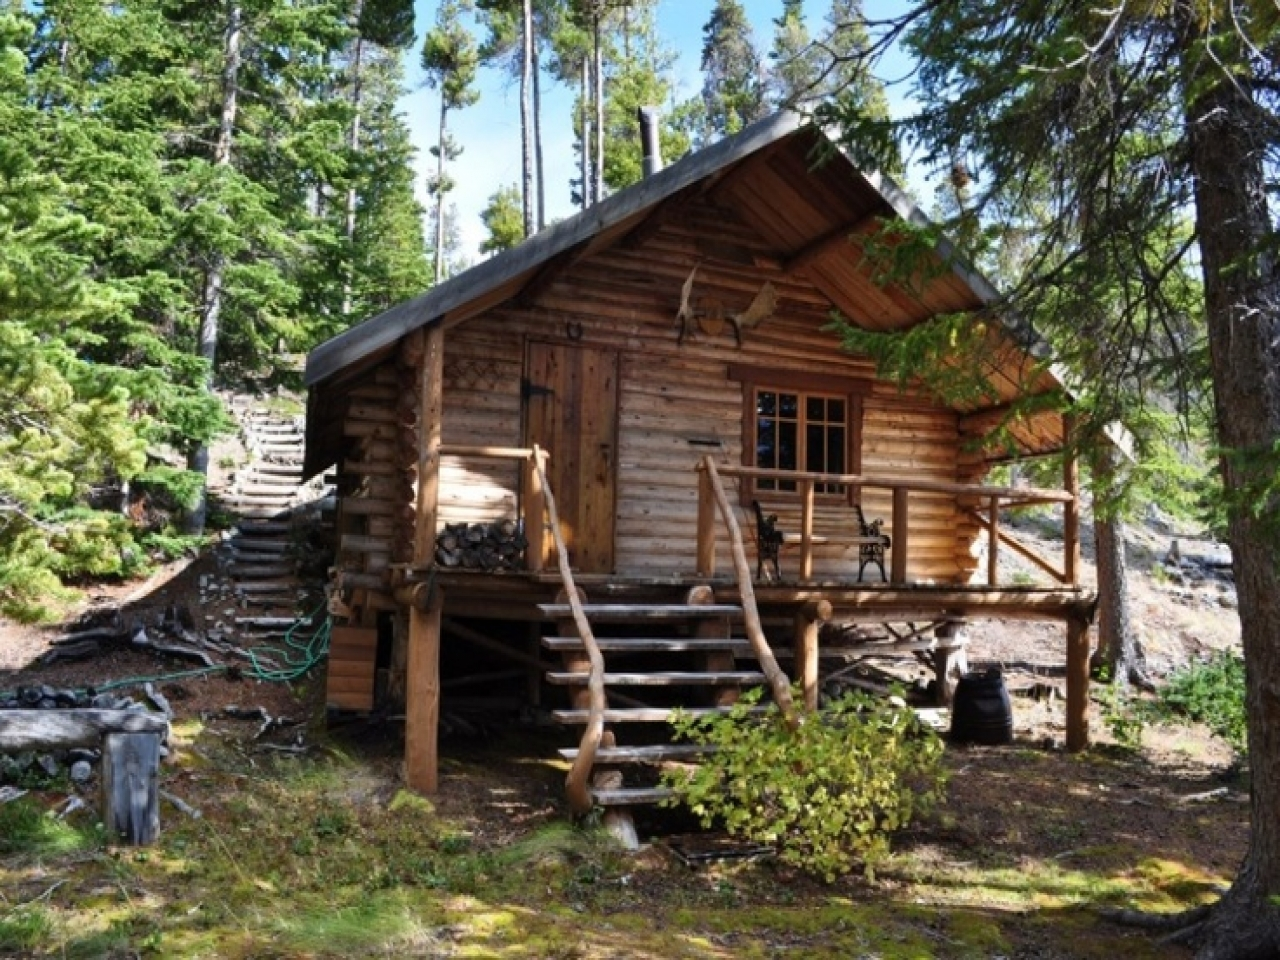 Wilderness log cabin survival log cabins wilderness cabin for Wilderness cabin plans